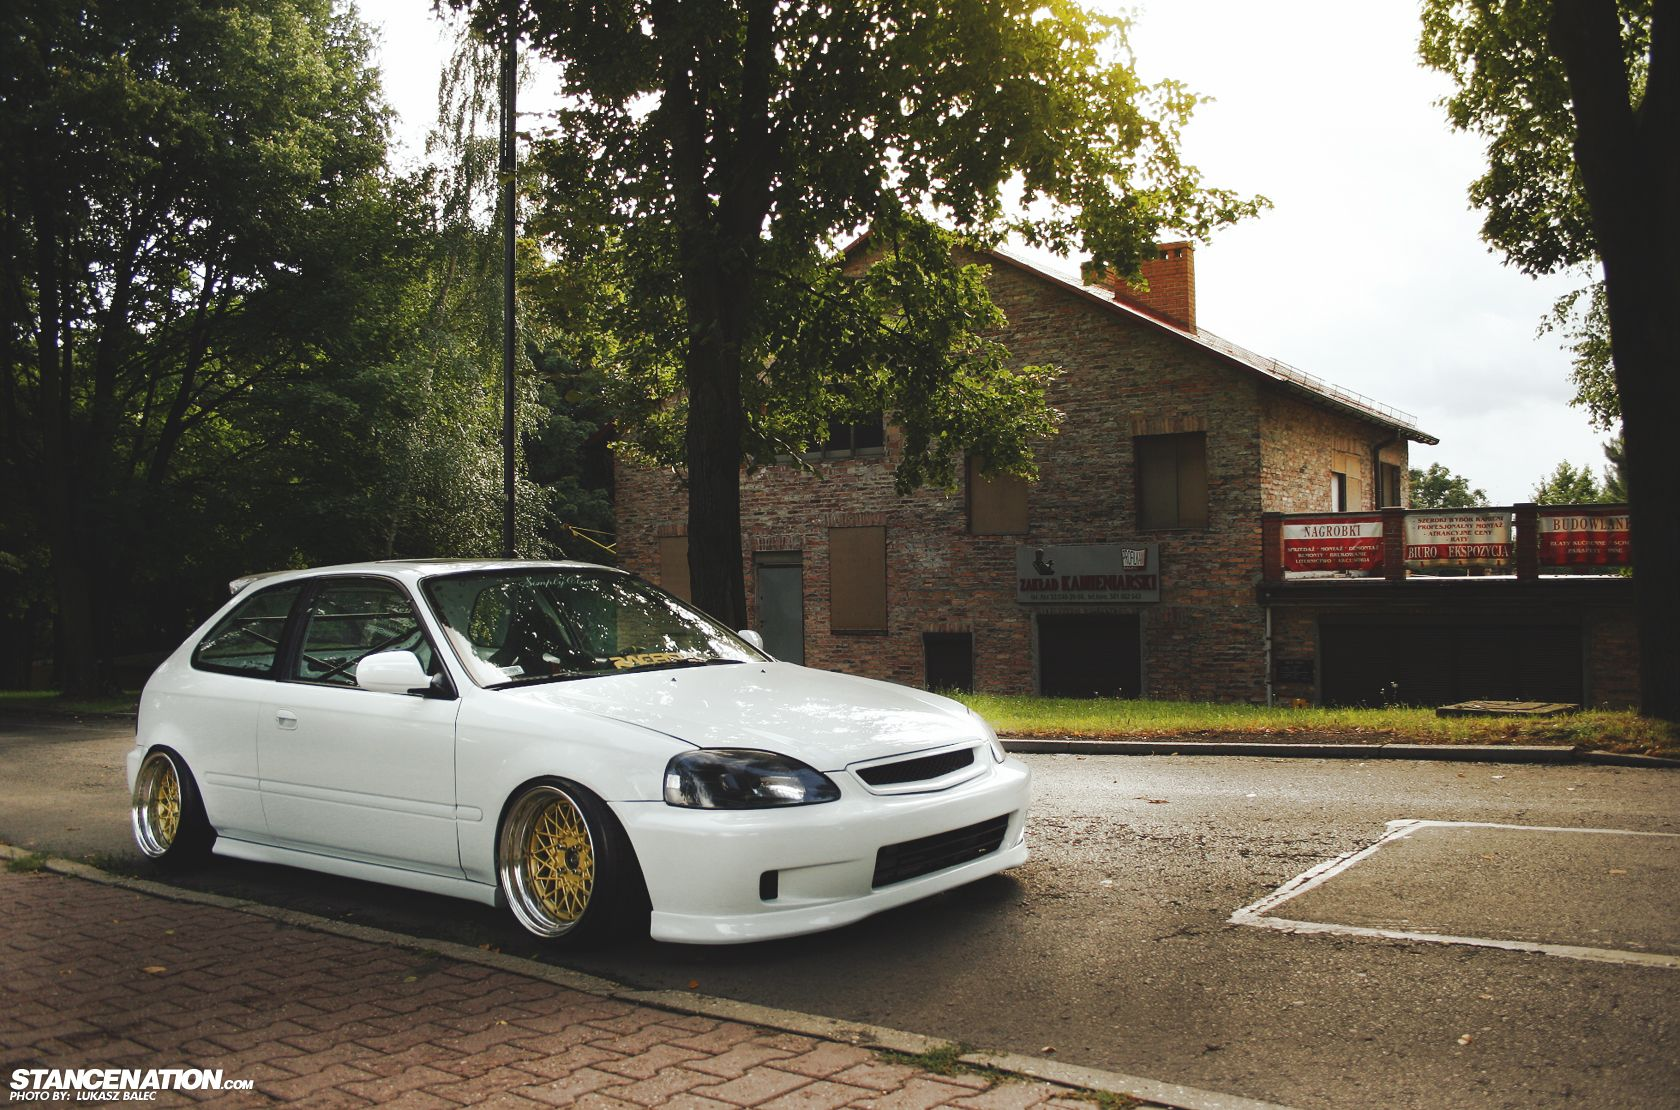 From Poland, With Stance. Civic hatchback, Honda civic